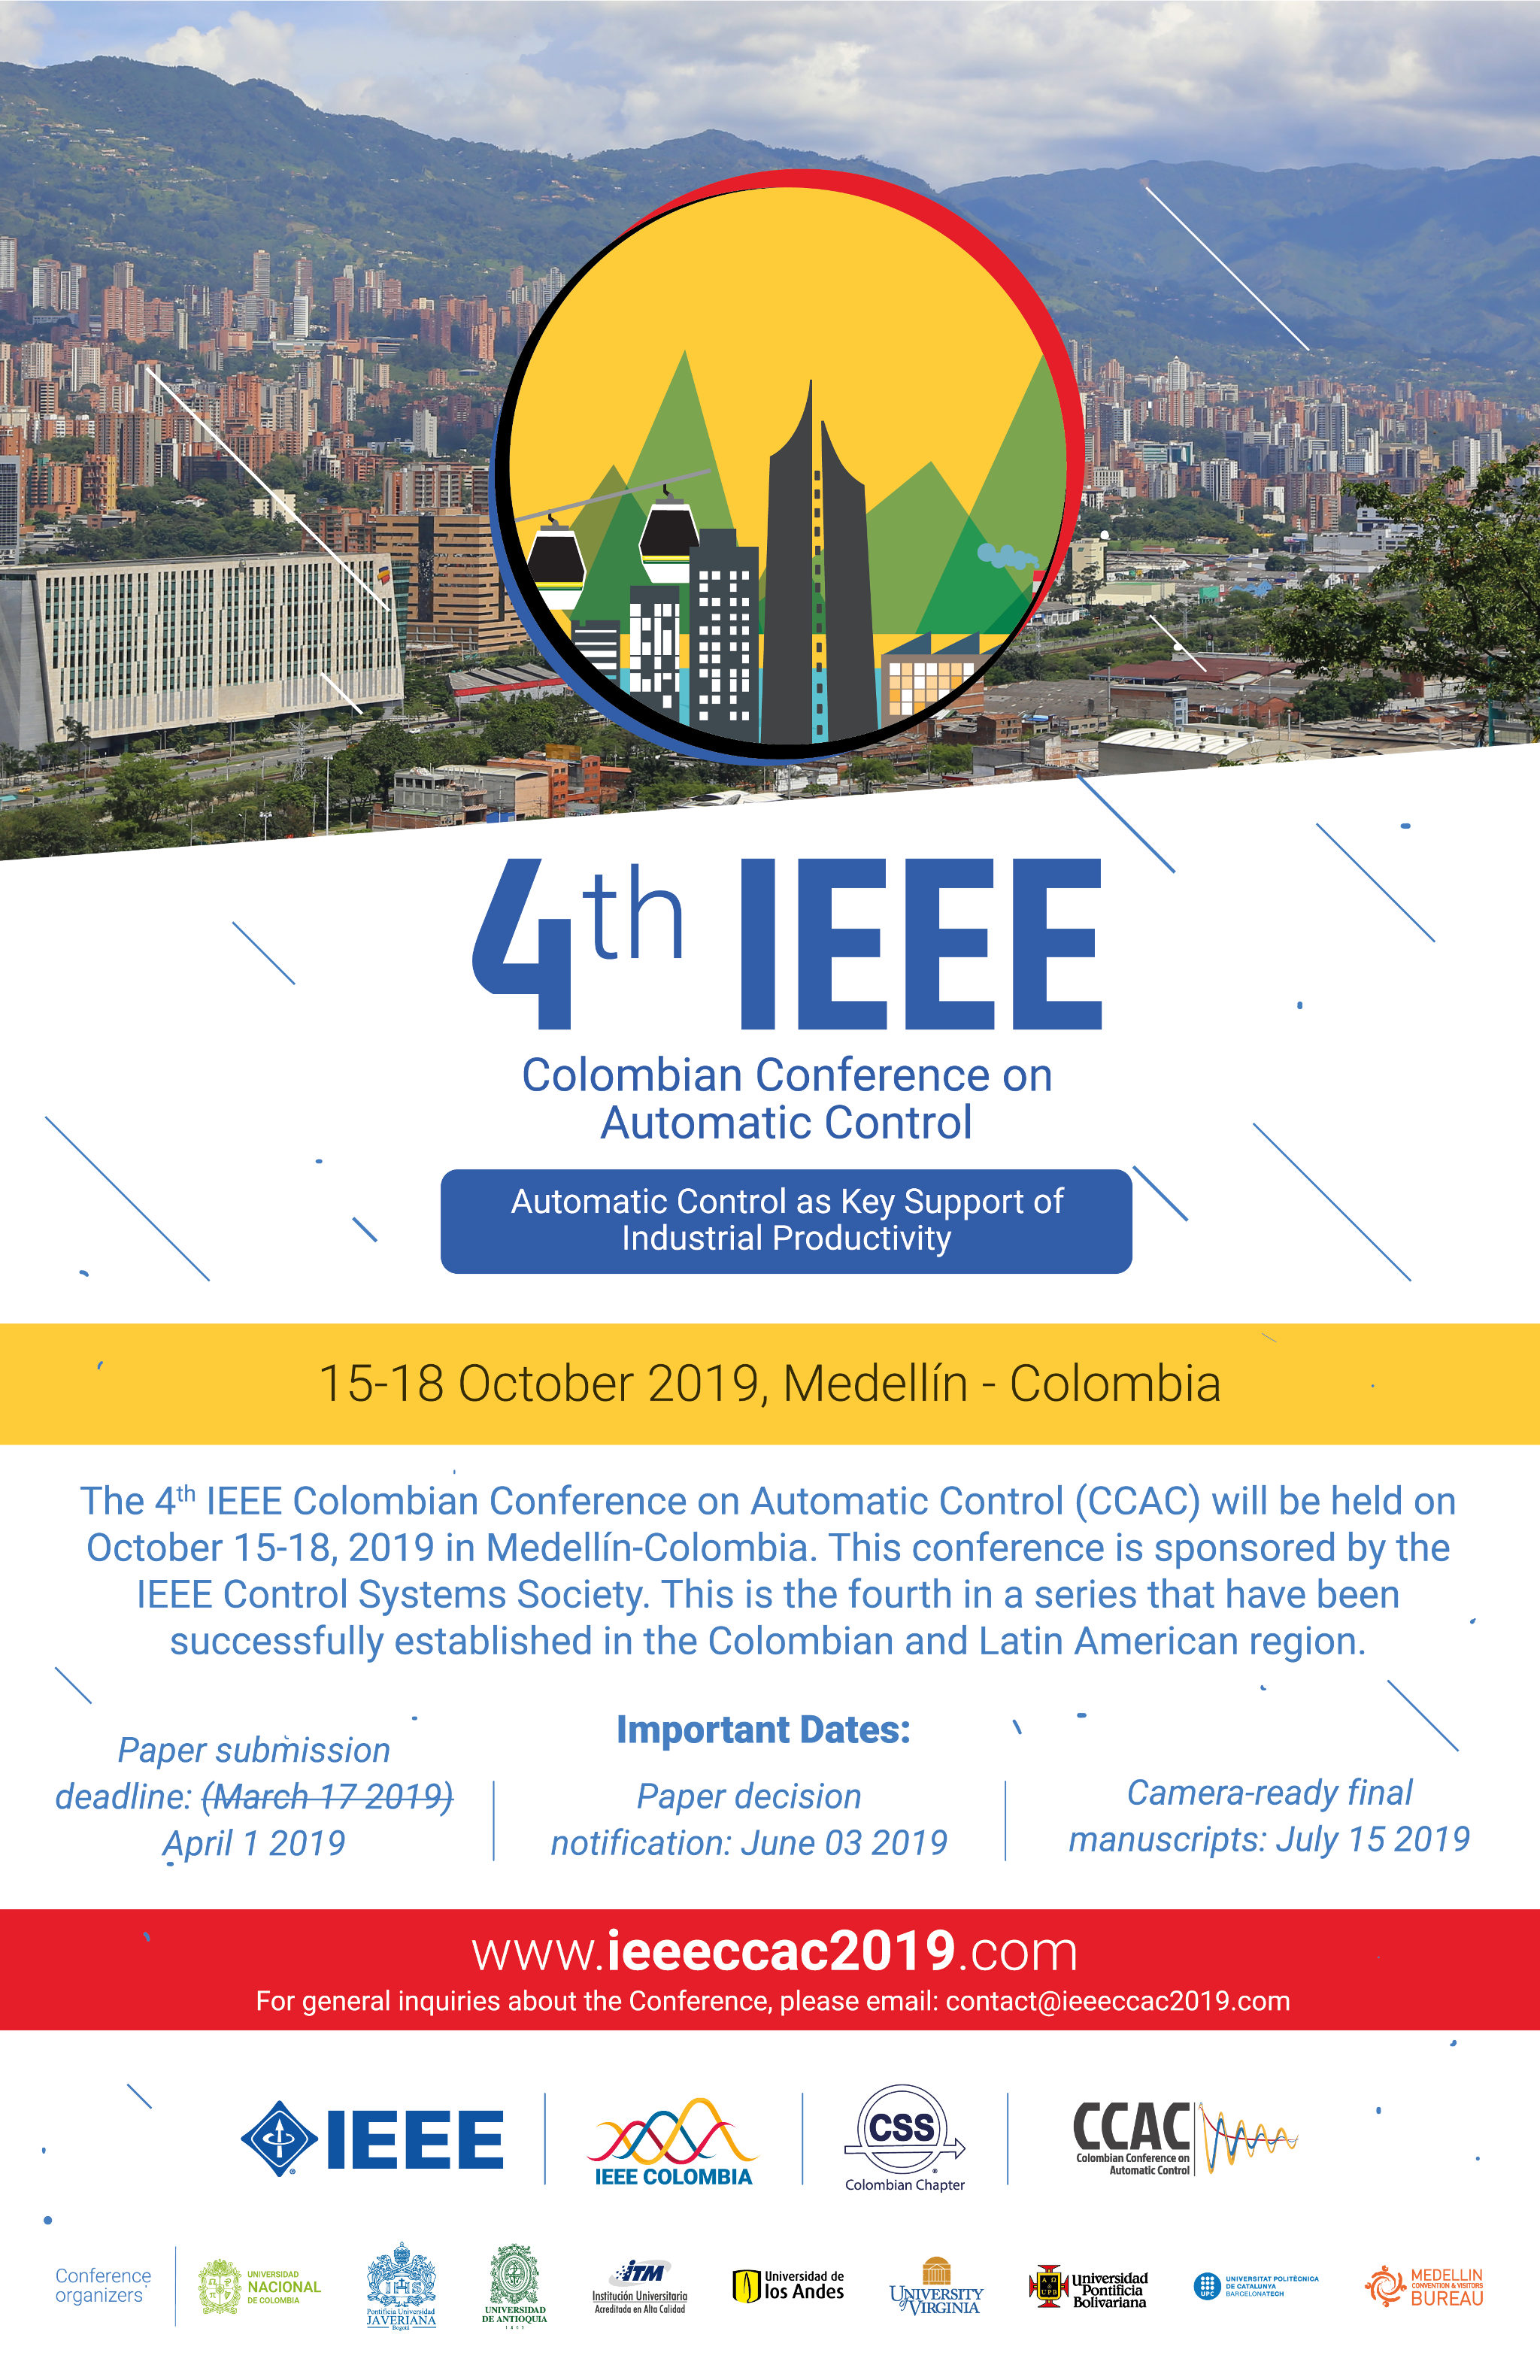 4th IEEE Colombian Conference on Automatic Control